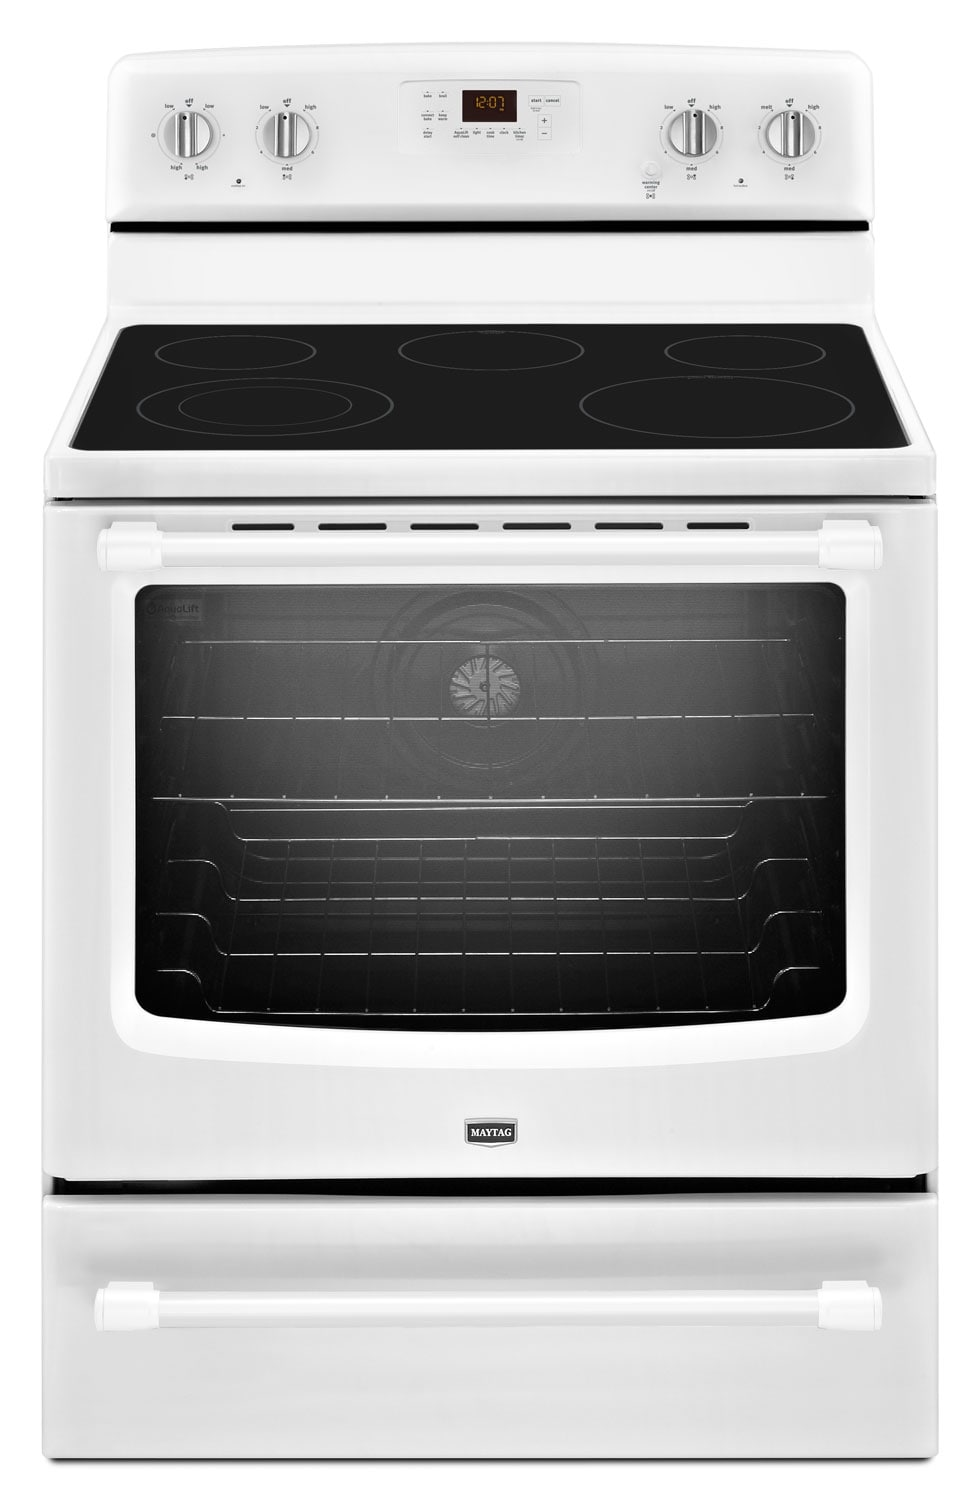 [Maytag White Freestanding Electric Convection Range (6.2 Cu. Ft.) - YMER8700DW]